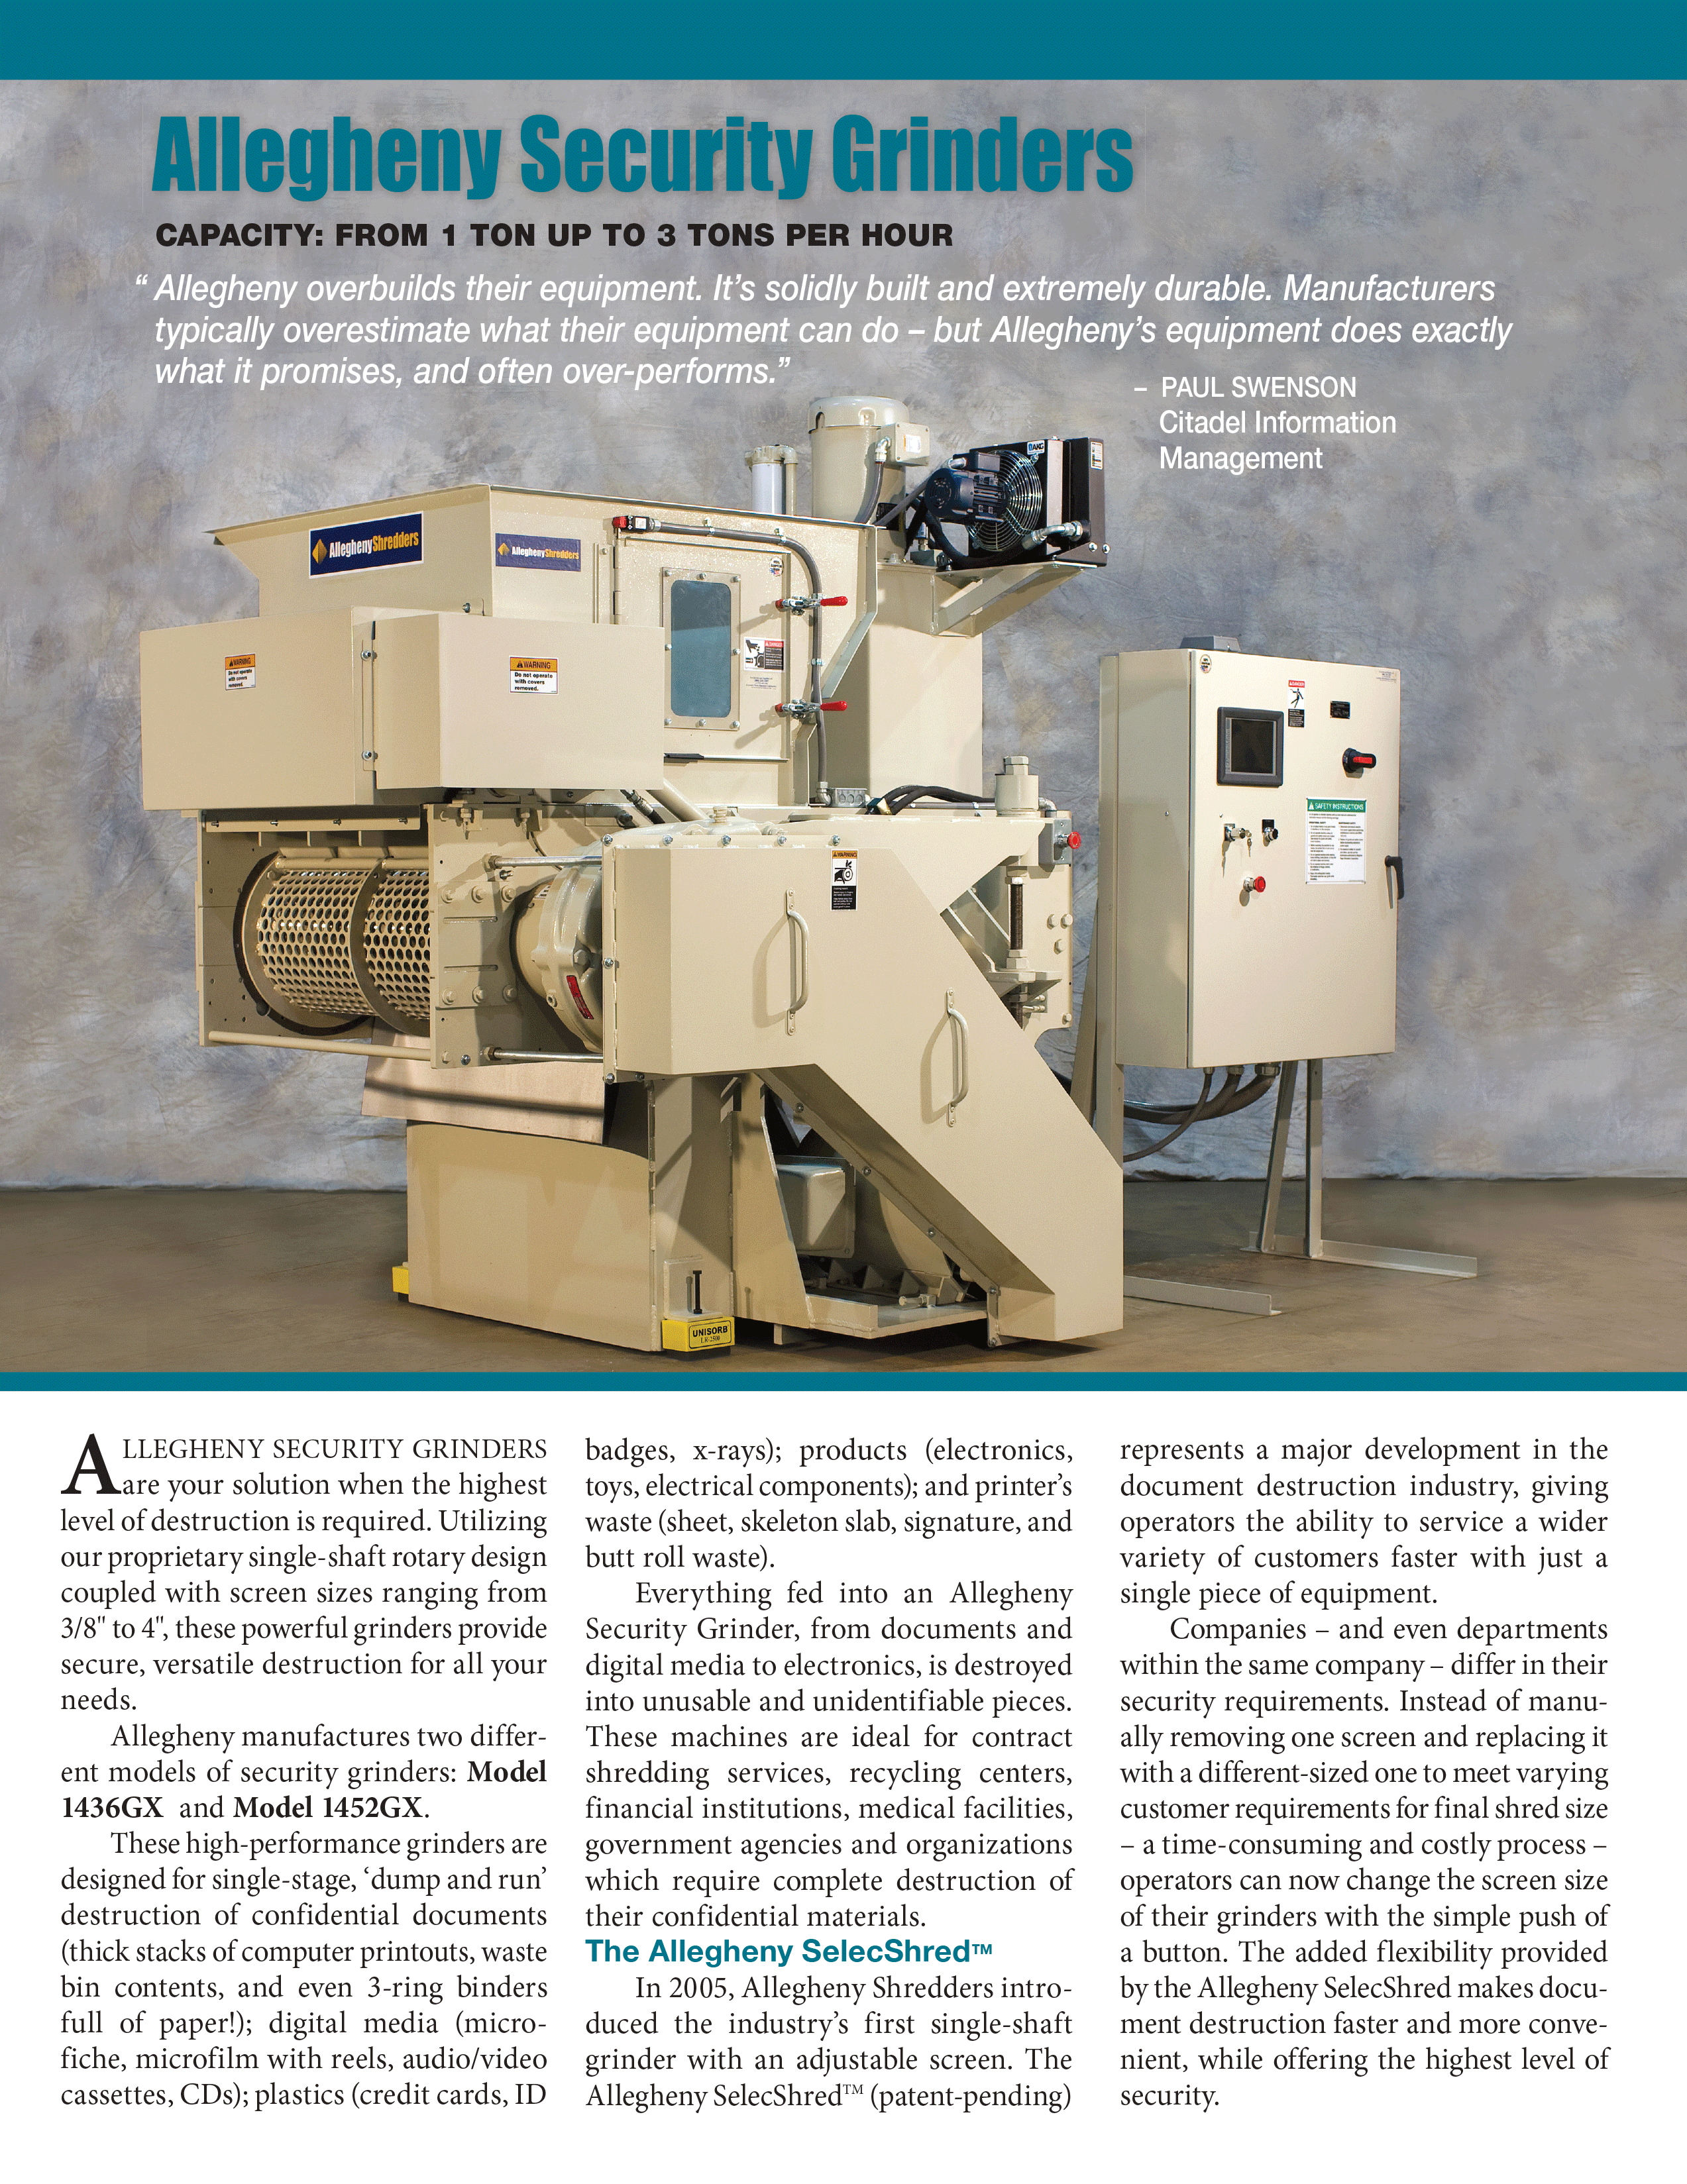 Learn more about Security Grinders in the Allegheny Brochure.